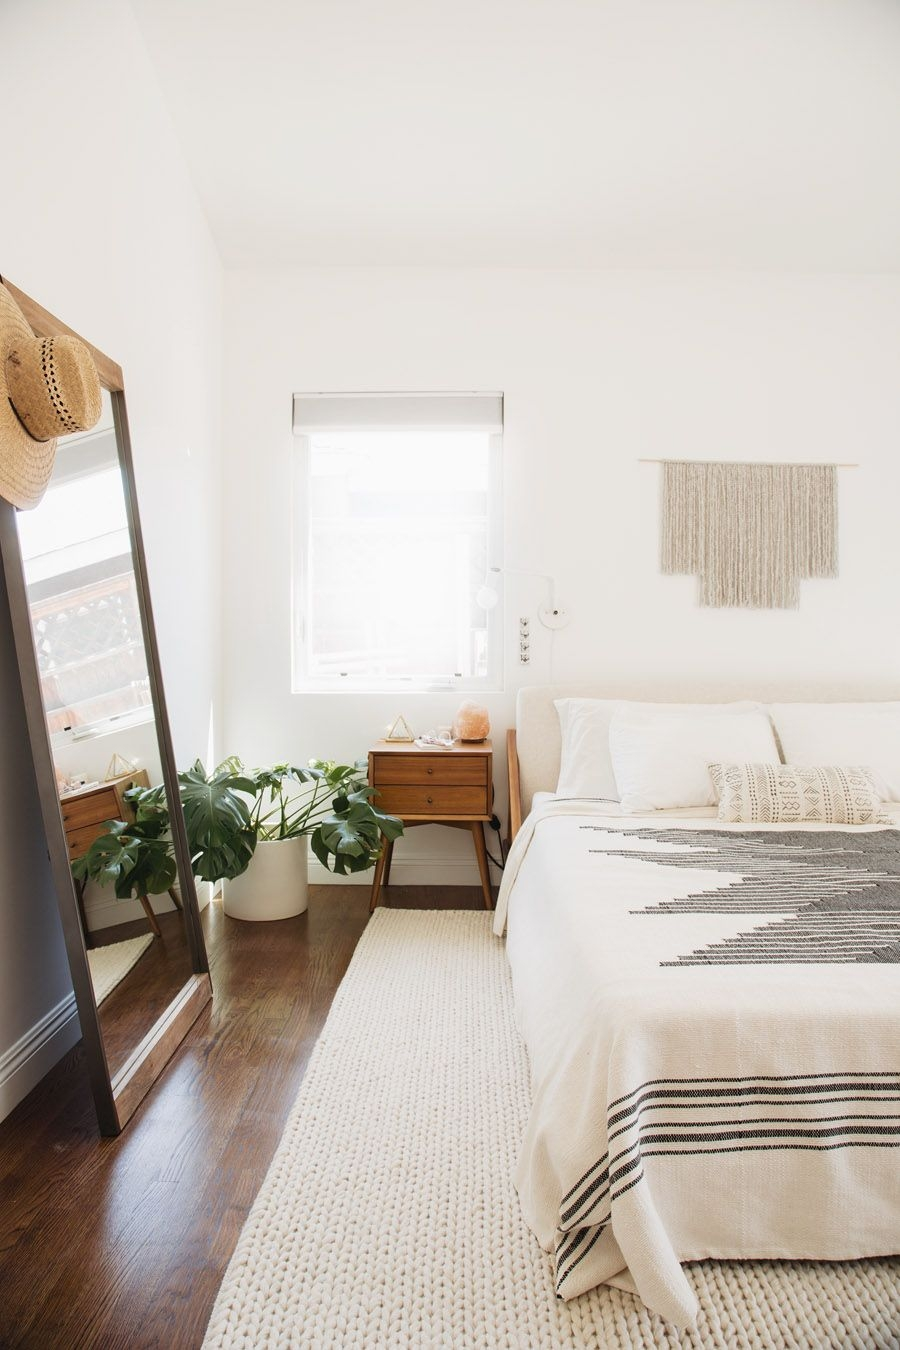 Exquisite Minimalist Boho Apartment On Exquisite Small Changes Make A Big Impact In This Modern Bedroom On Minimalist Boho Apartment